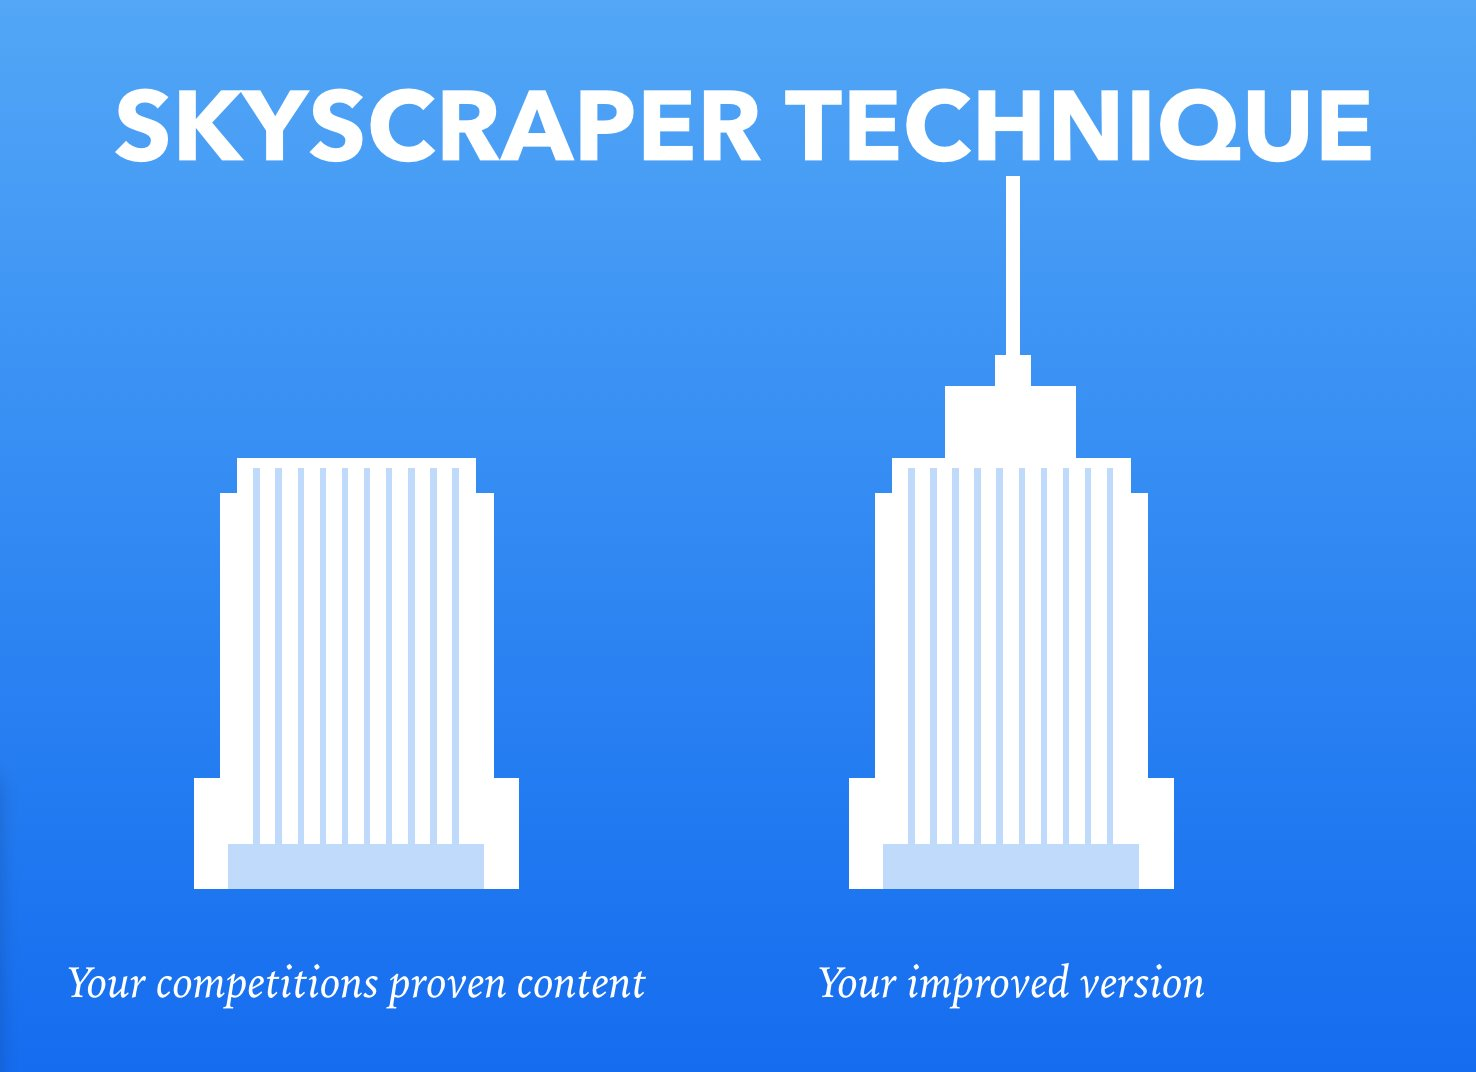 Skyscraper technique Chart